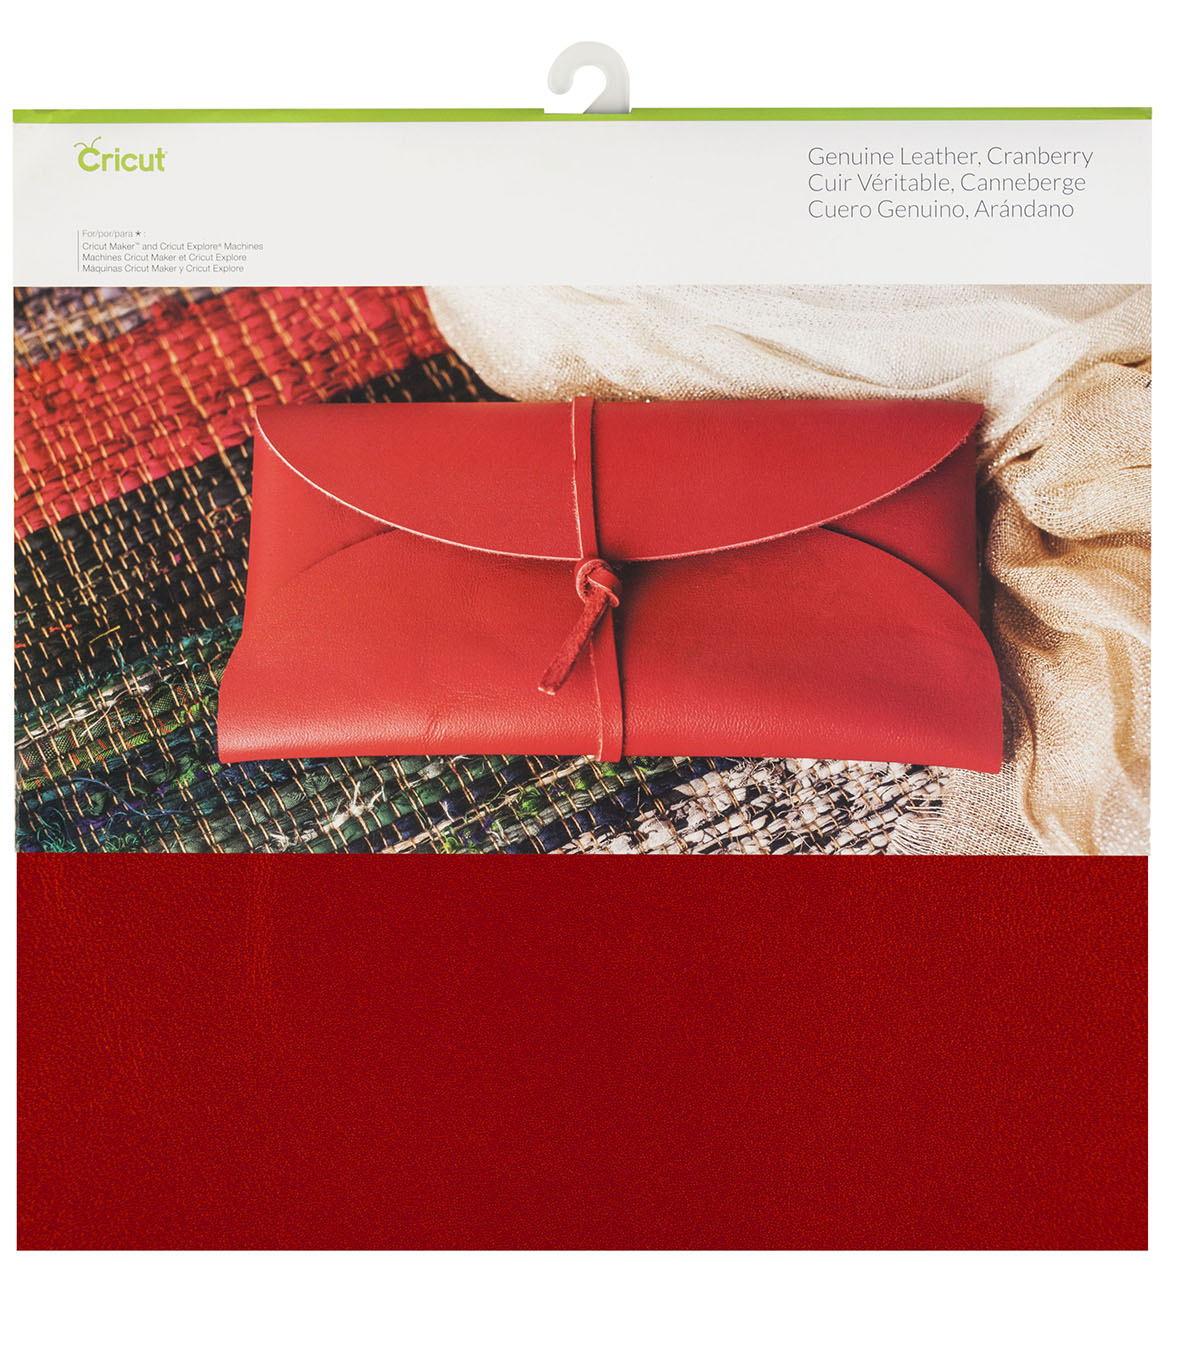 Cricut 12\u0027\u0027x12\u0027\u0027 Genuine Leather-Cranberry